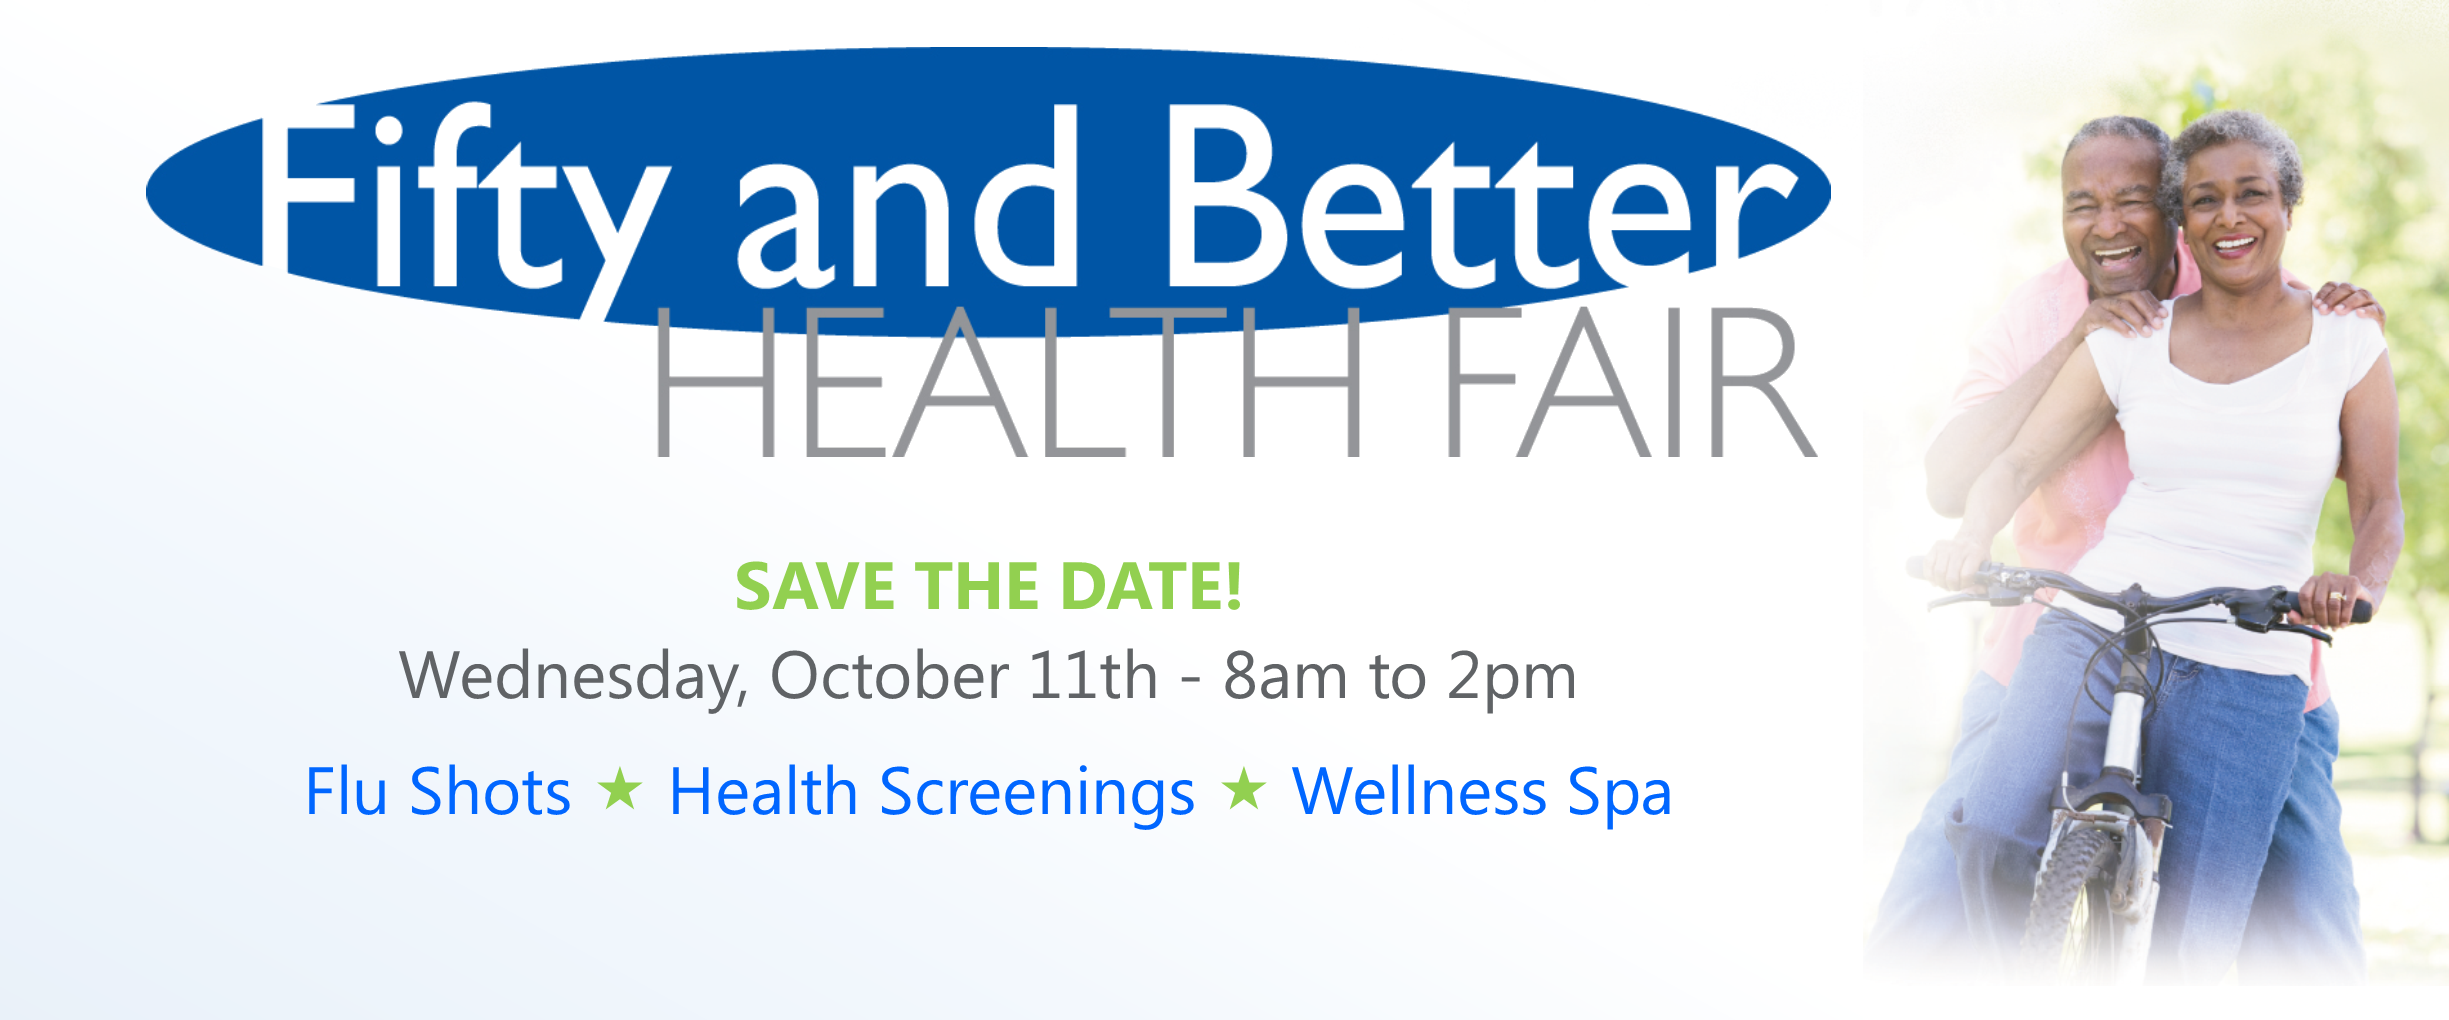 Health-Fair-Website-Banner-2017